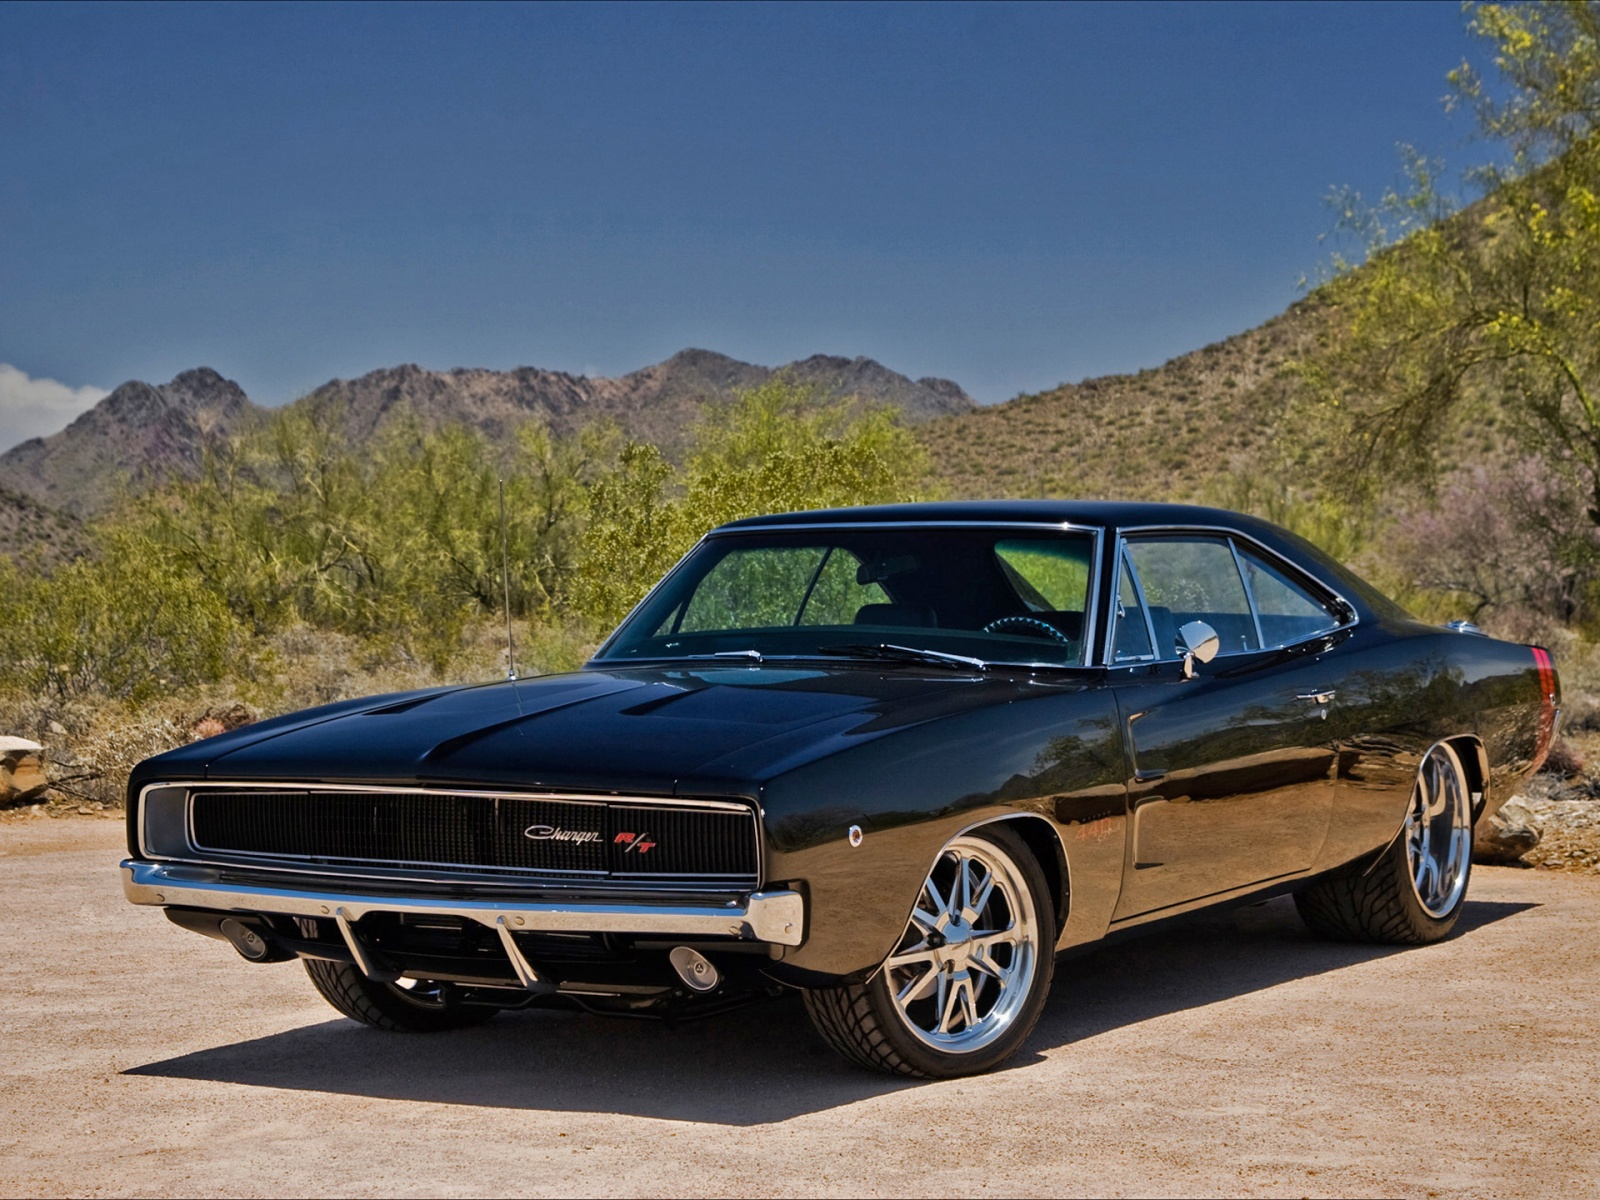 ... mopar-muscle-cars_1600x1200 ...